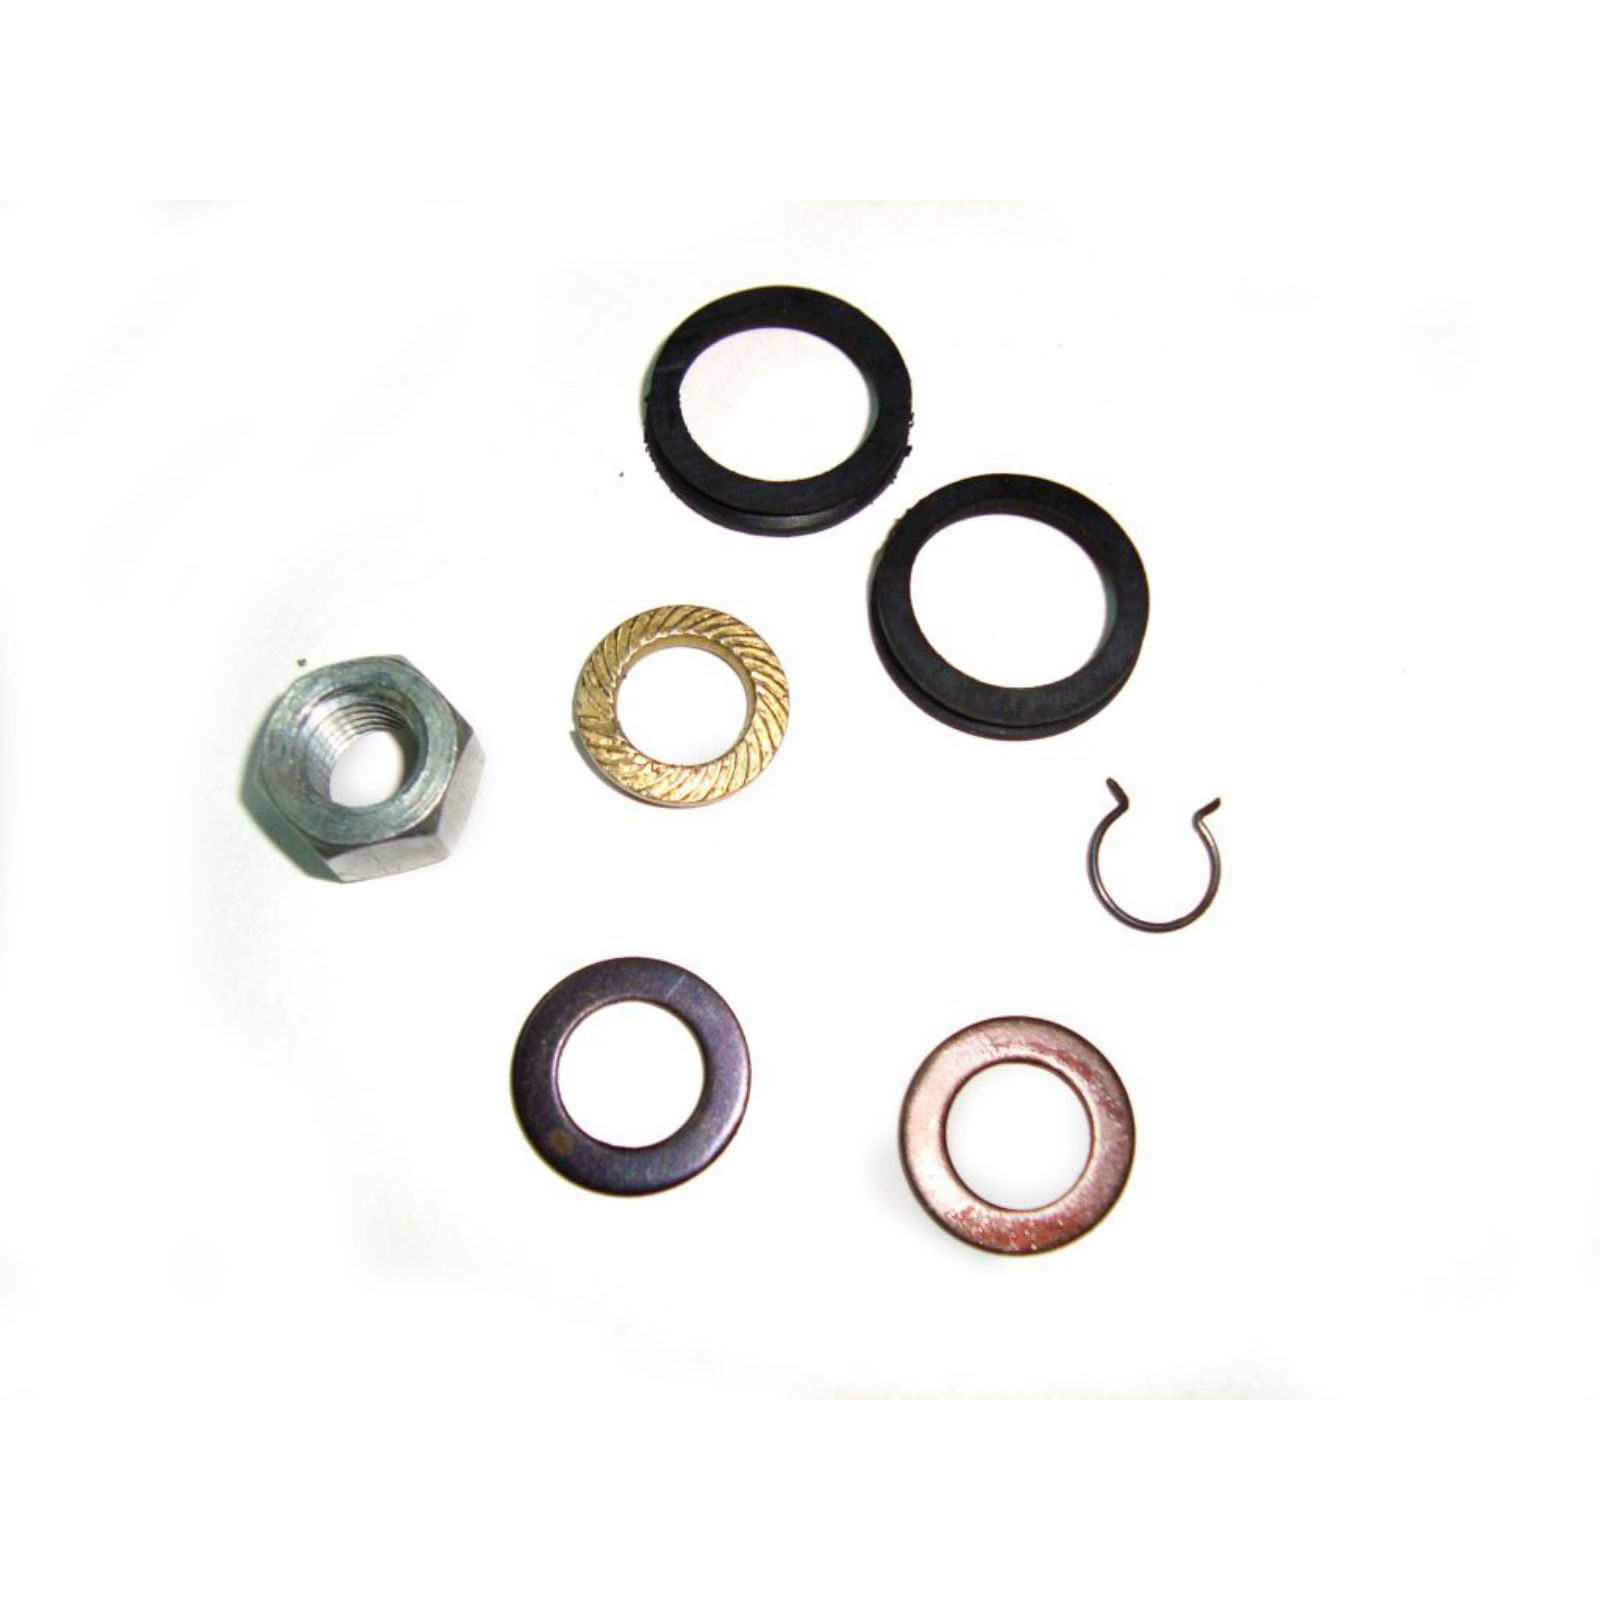 Damper Shock Spring Trunnion Kit Fits Vespa Bajaj VBB VBA Super Sprint150